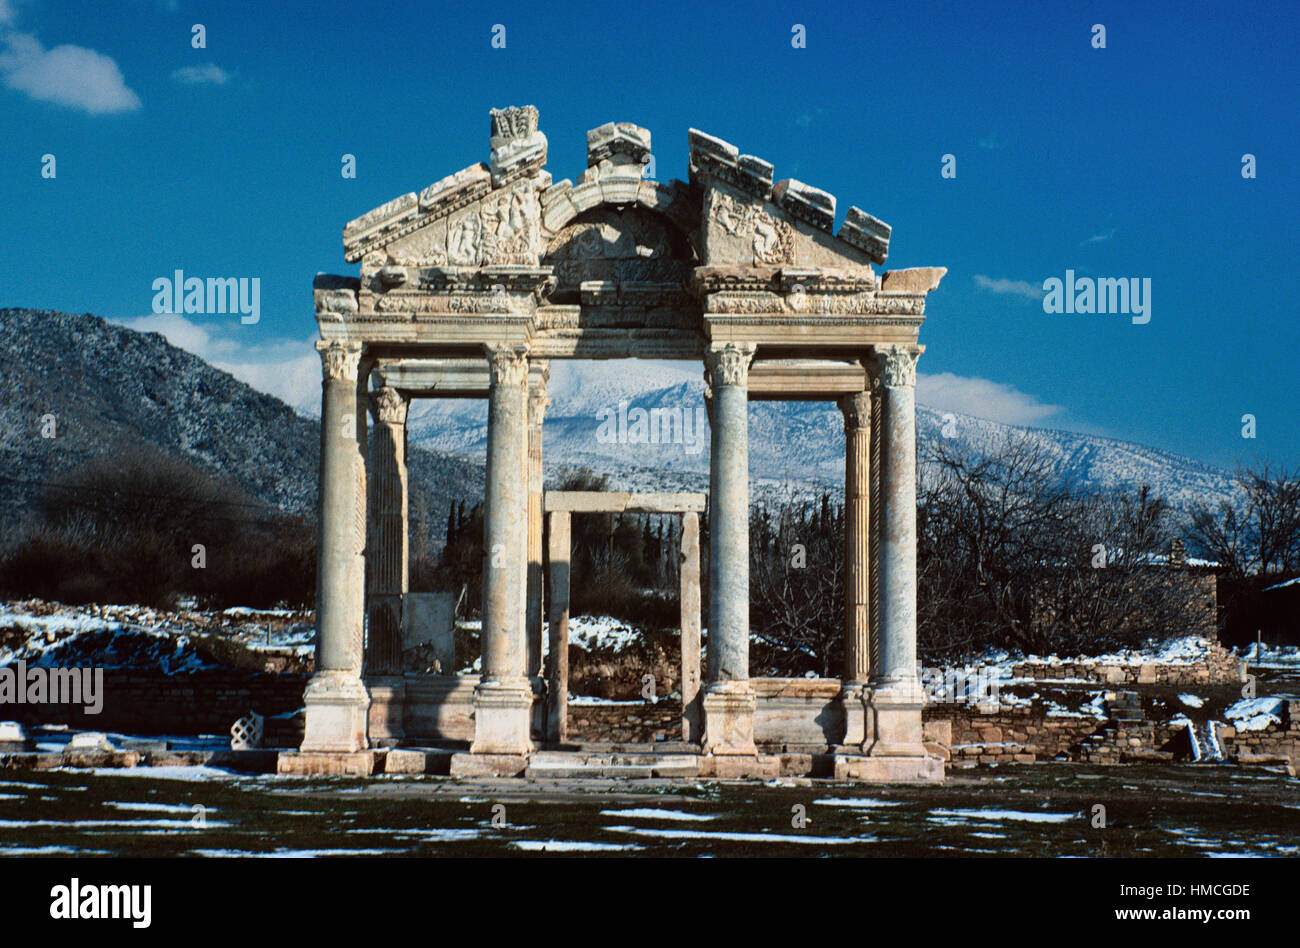 The Monumental Gateway or Tetrapylon (AD 200) in the Ruins of the Ancient Greek City of Aphrodisias Turkey - Stock Image